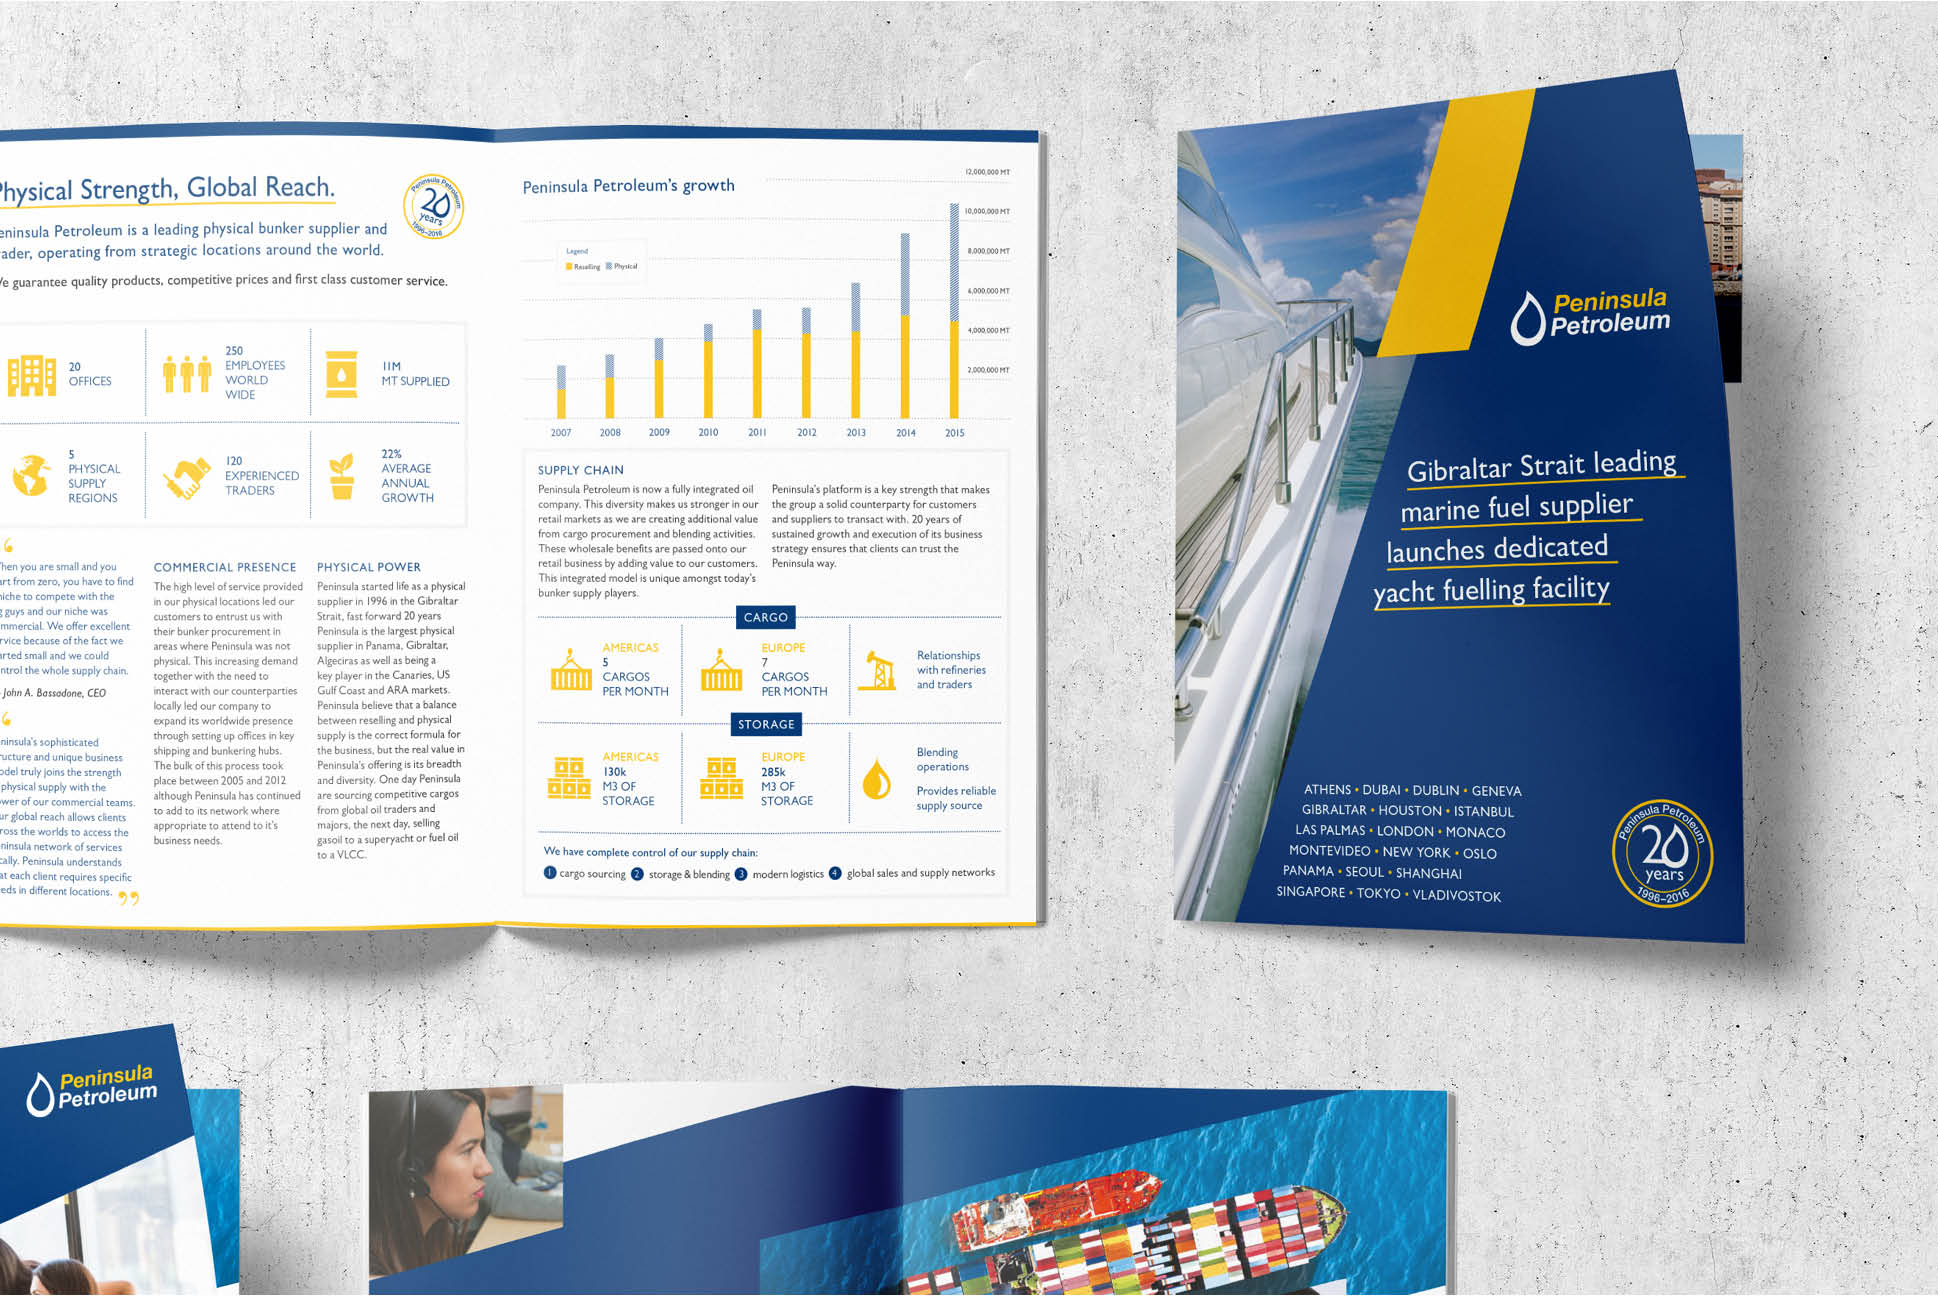 Peninsula Petroleum flyers | Branding and Marketing Services - Independent Marketing | IM London